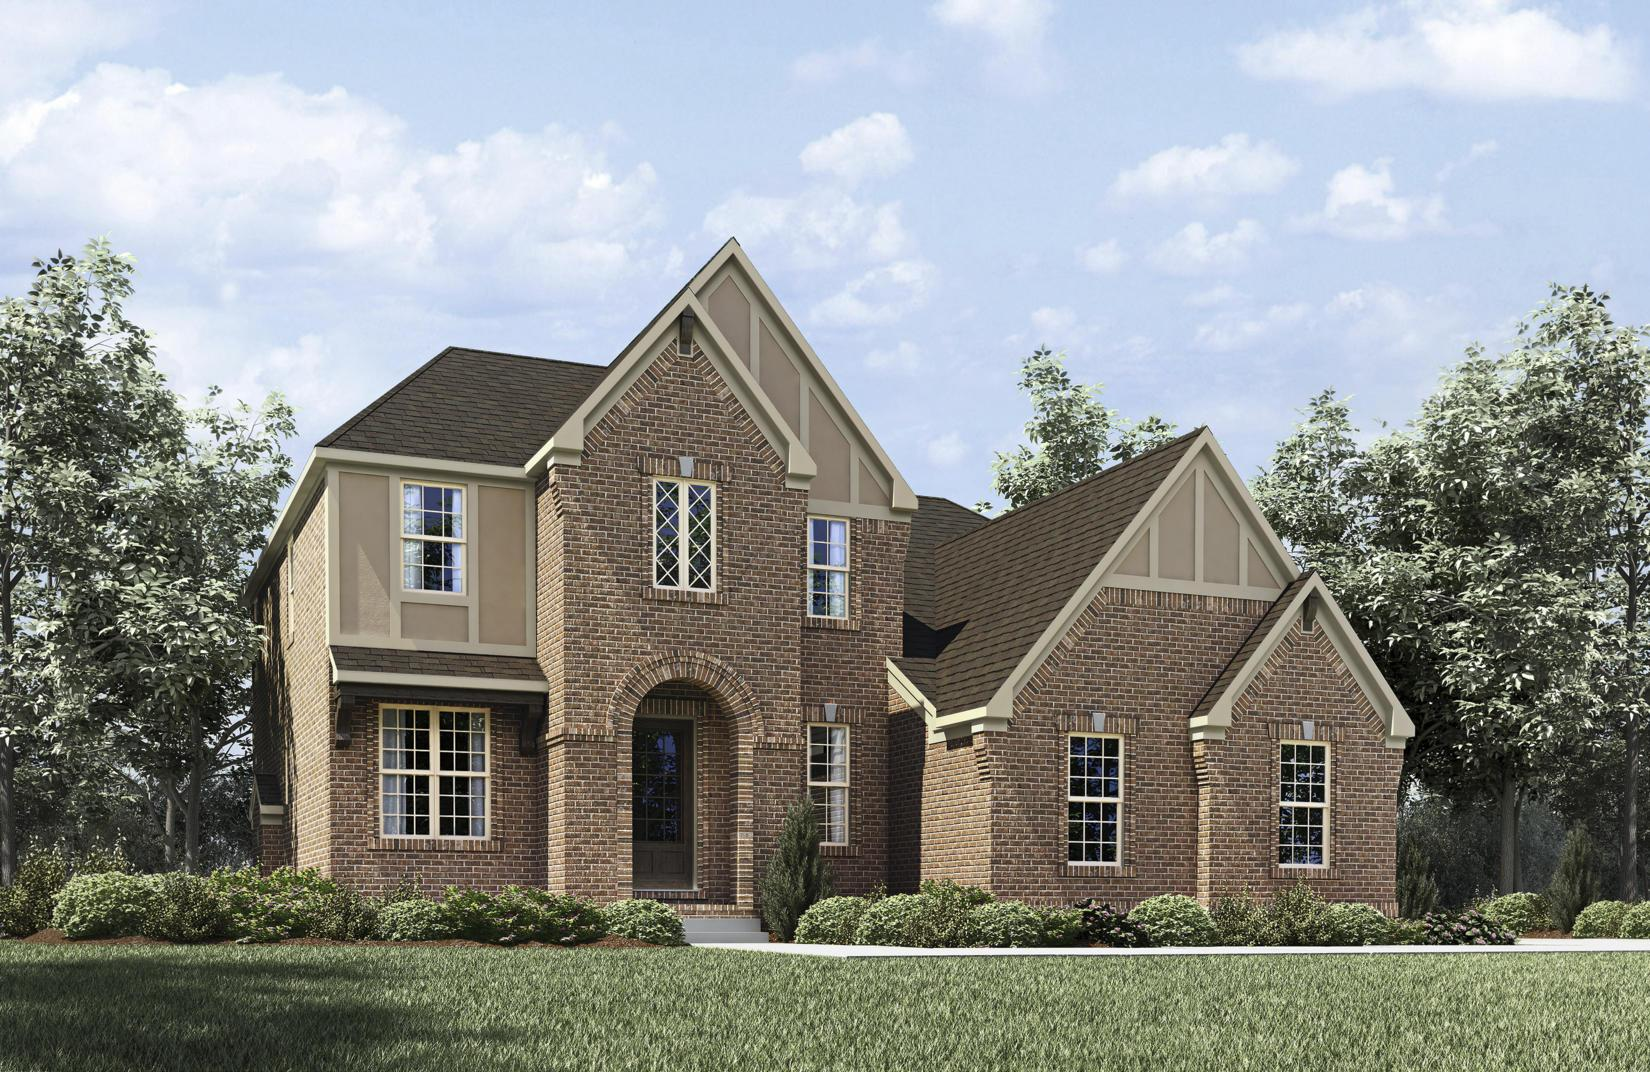 Single Family for Active at Celestial 112 Asher Downs Circle Nolensville, Tennessee 37135 United States